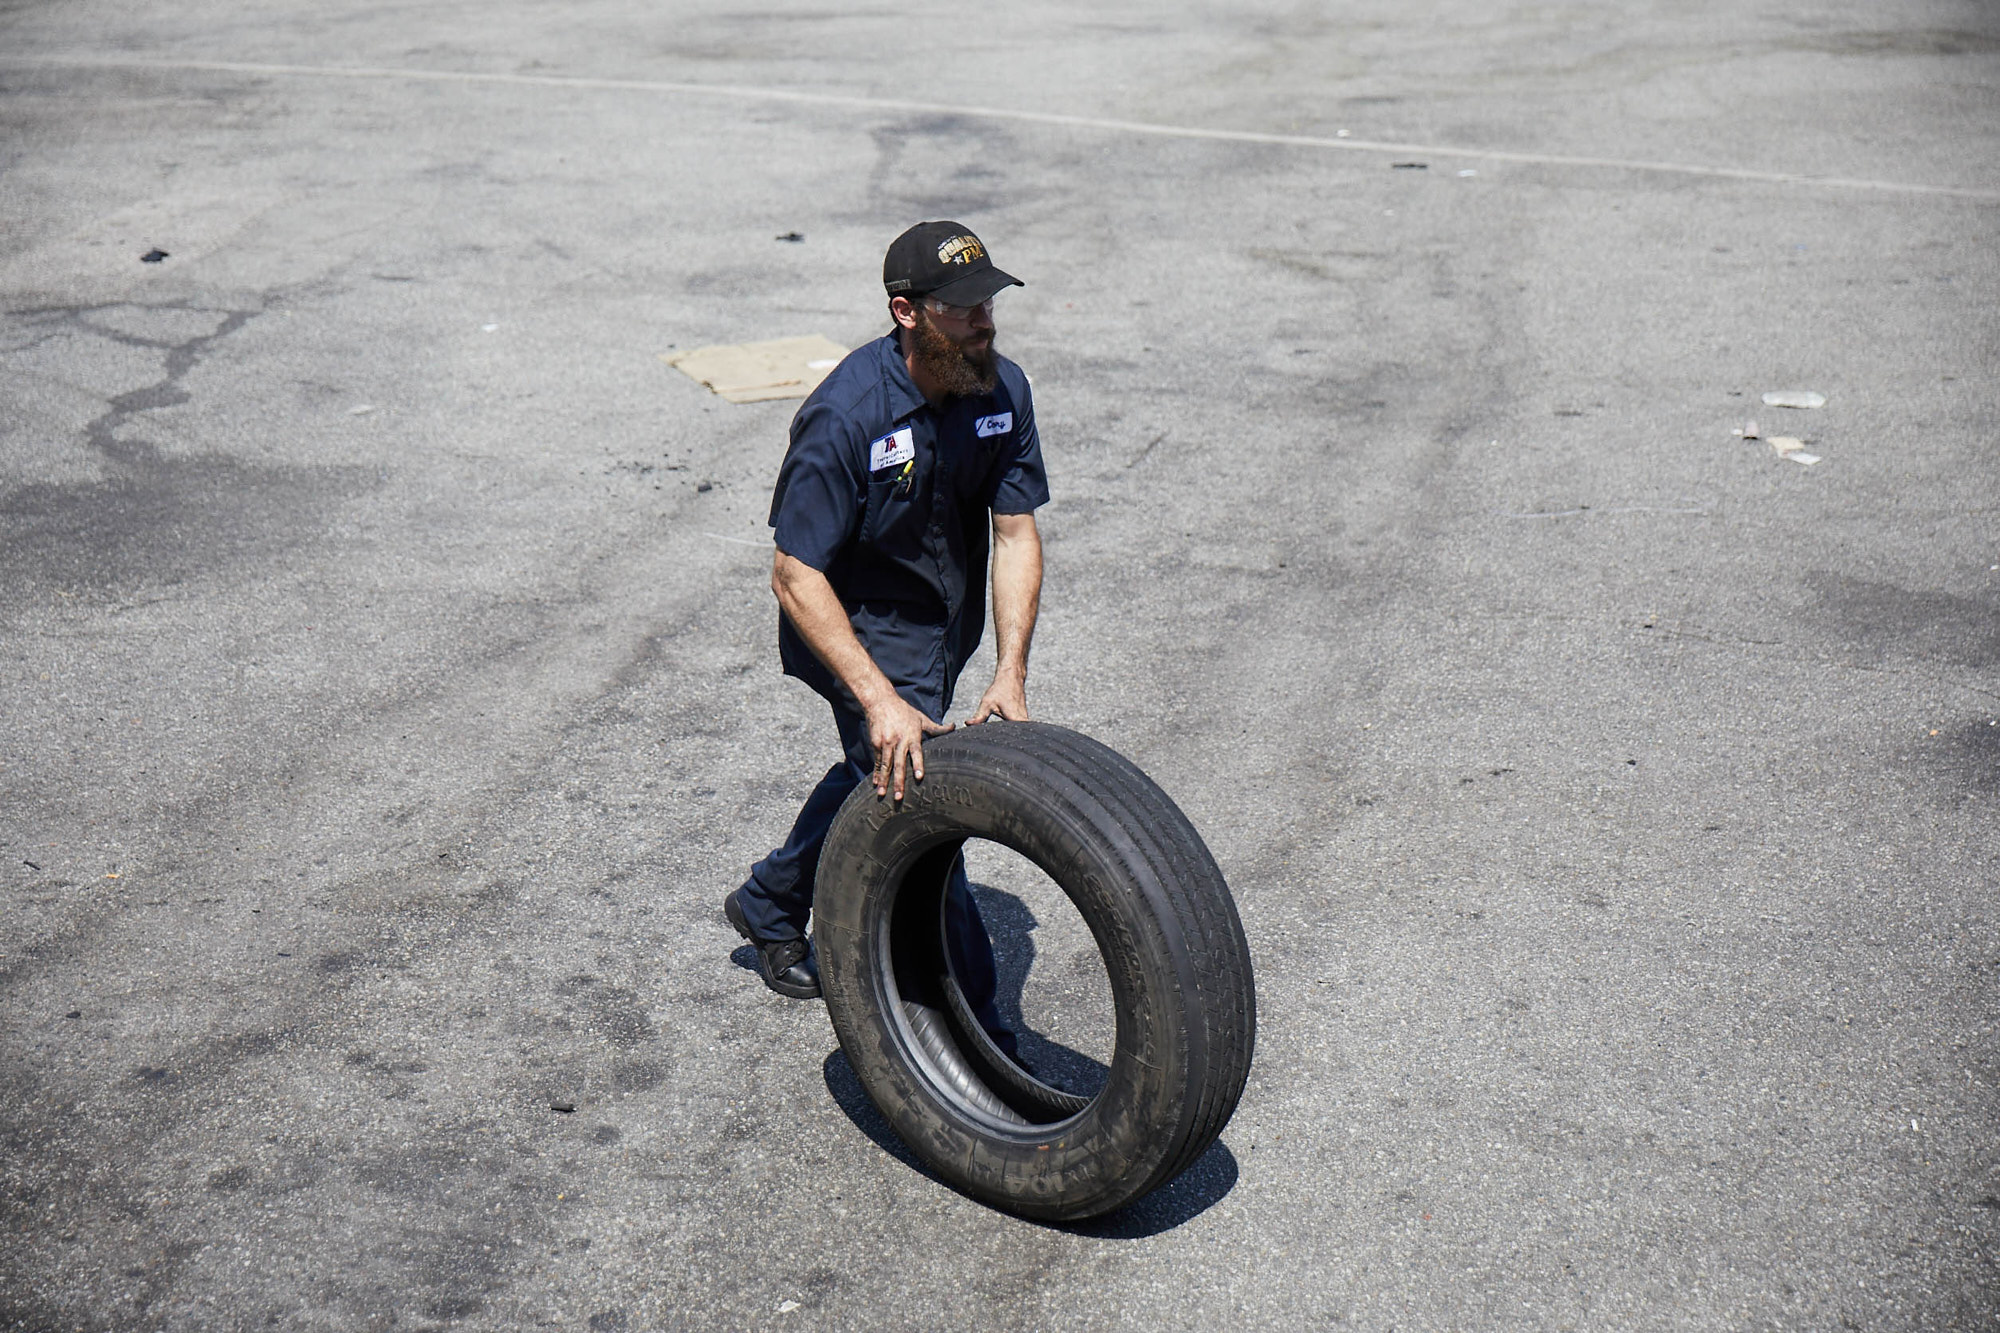 UF_Garage_Tire_B-0161